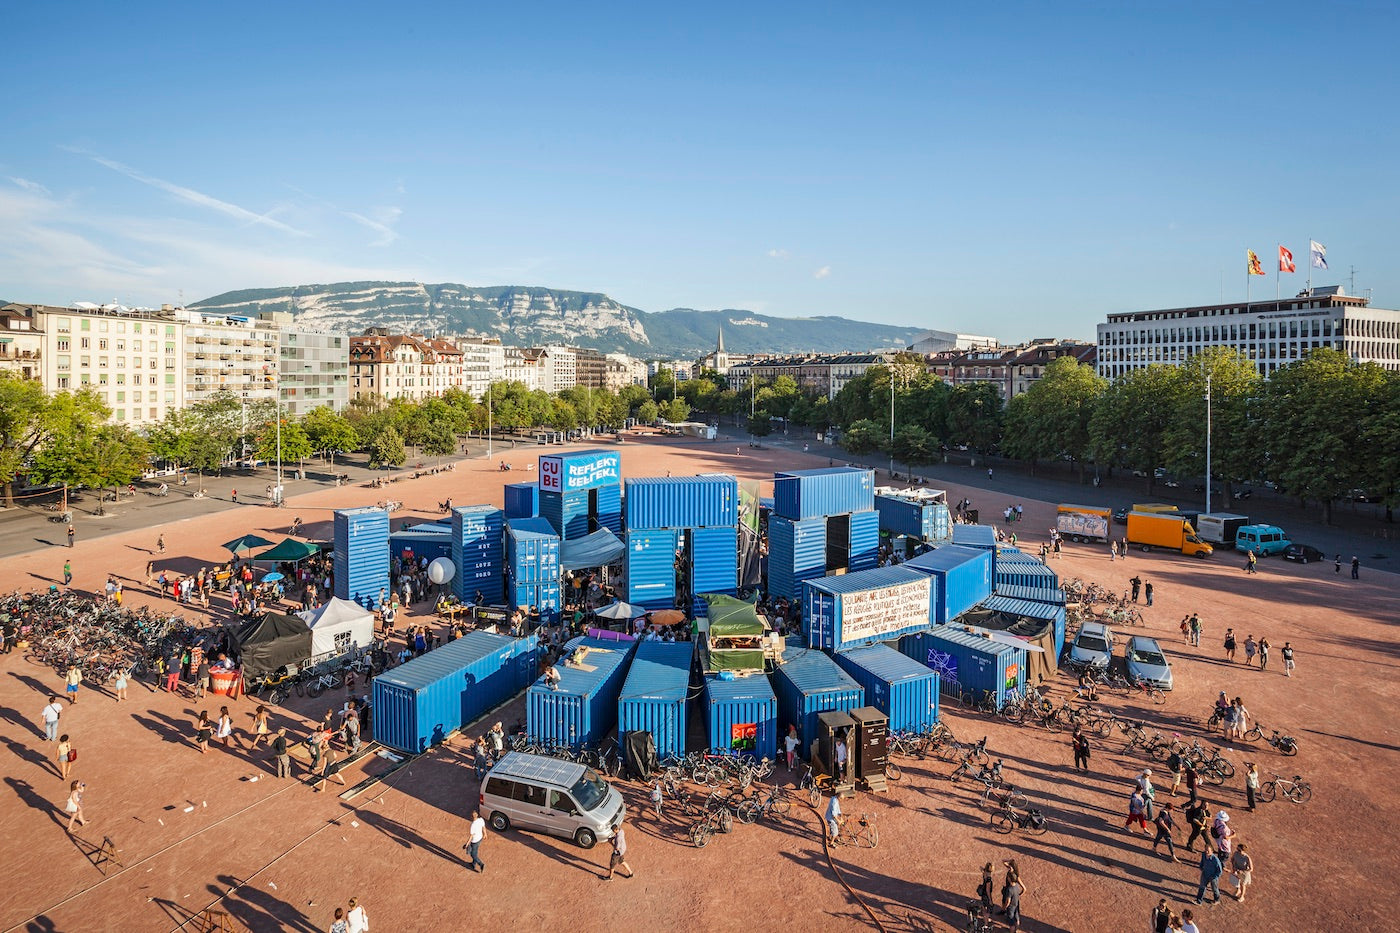 Containers: From The Docks To An Architectural Spectacle